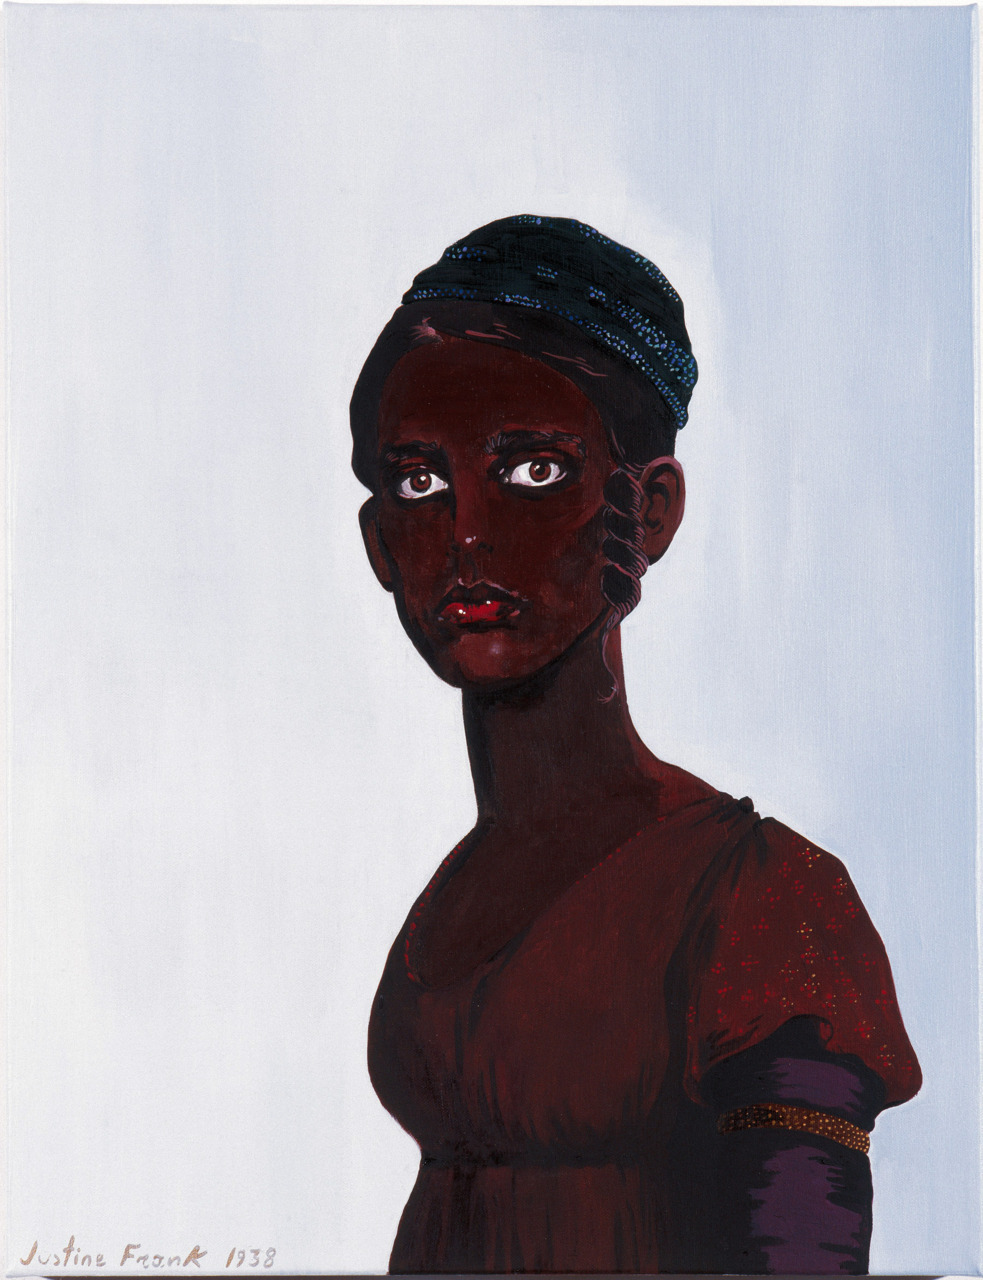 Justine Frank, Untitled (Self Portrait as a Black Woman) , oil on canvas, 1938